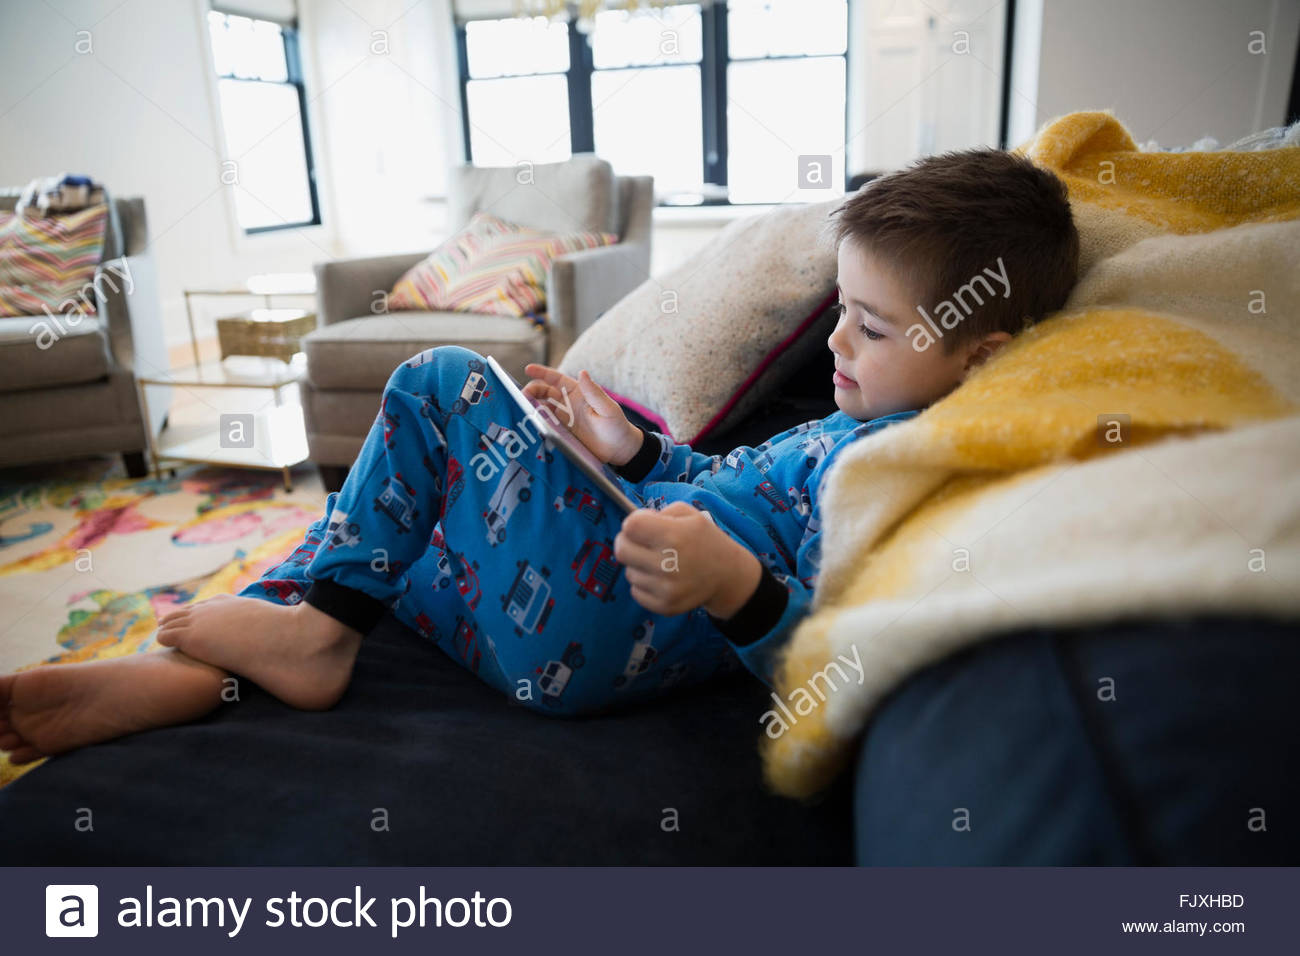 En pyjama garçon using digital tablet on sofa Photo Stock